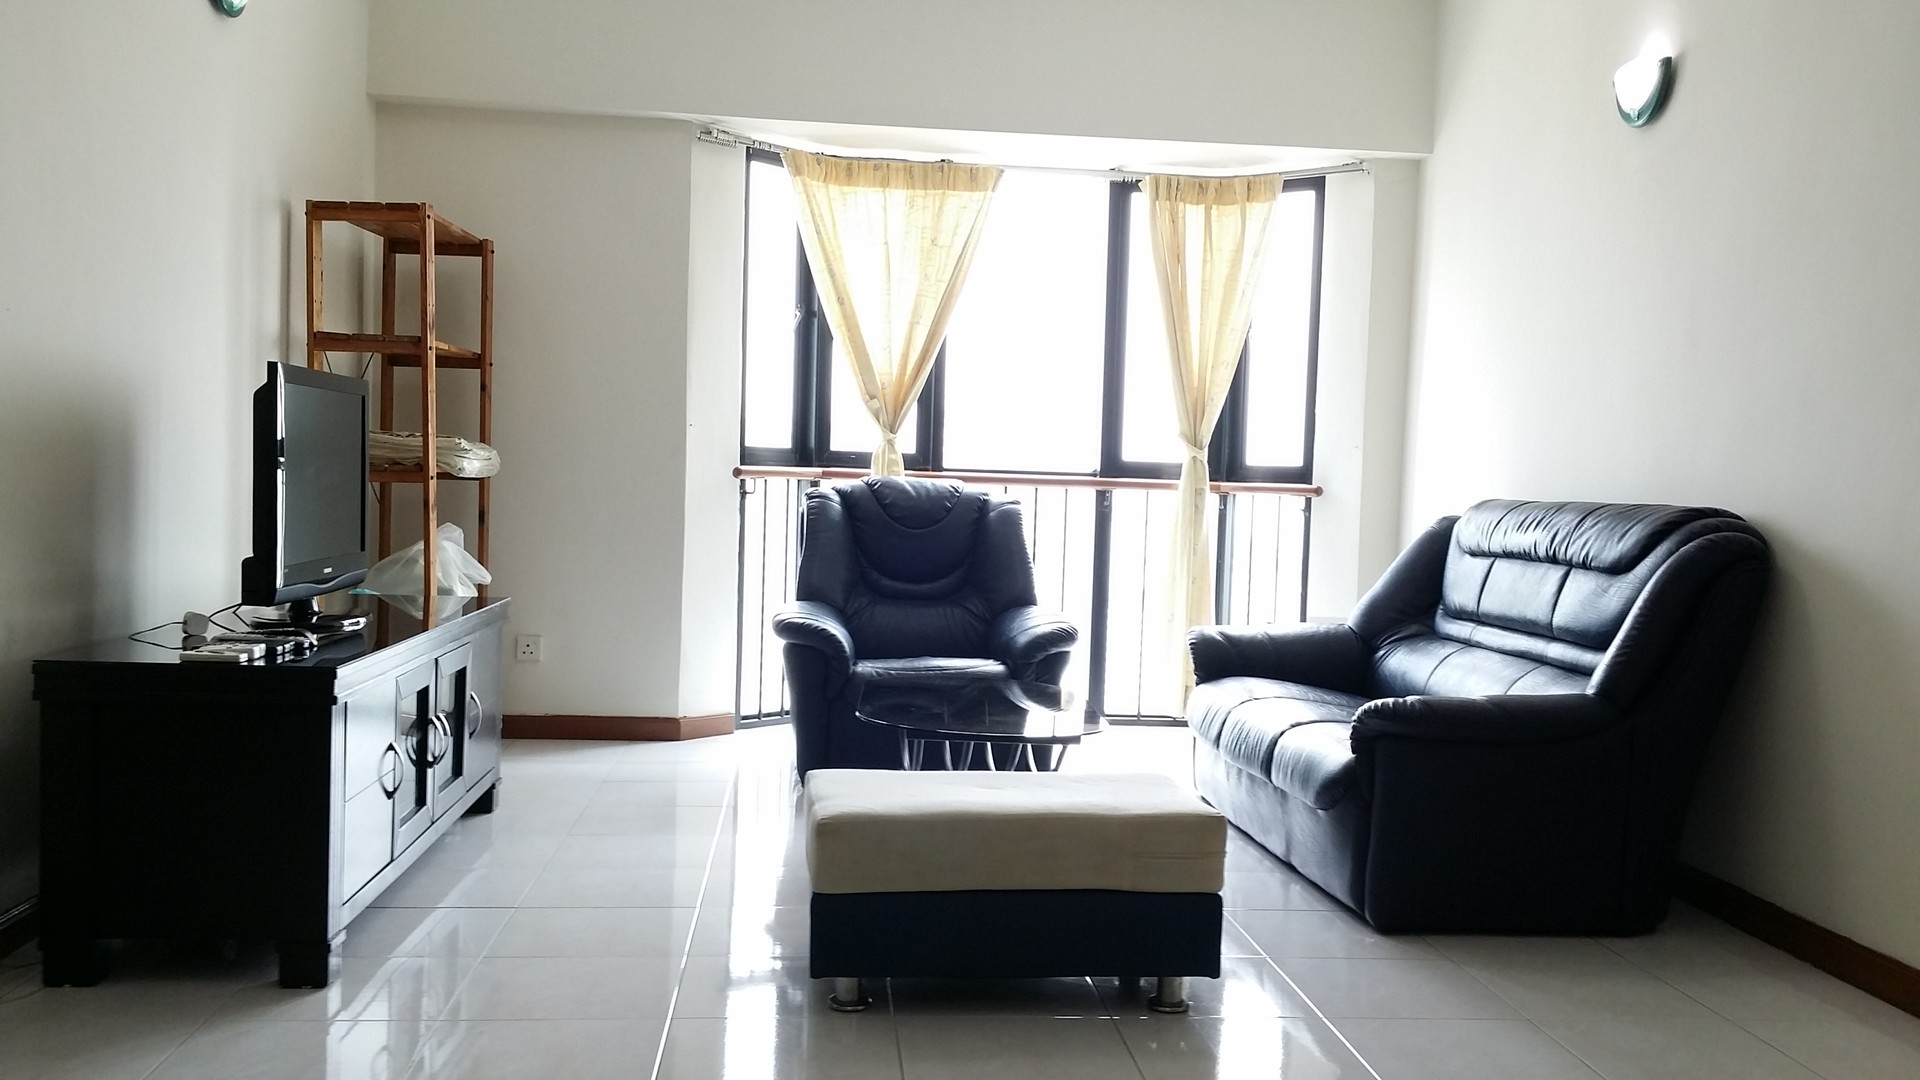 Magnificent Malaysia Kuala Lumpur City Center Condominium Furnished Room For Rent Near Lrt Station Download Free Architecture Designs Embacsunscenecom